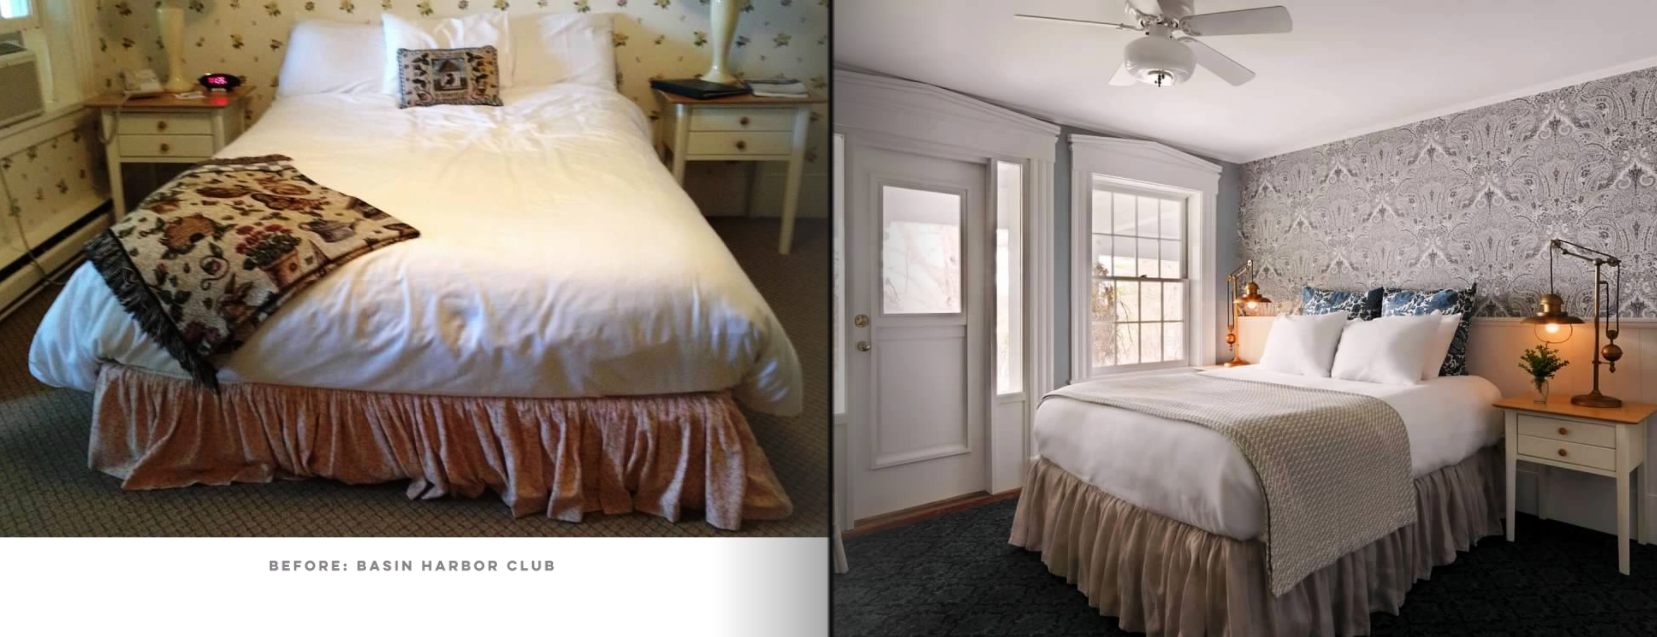 Lodge Room at Basin Harbor Club before and after Interiors by Joanne Palmisano.png